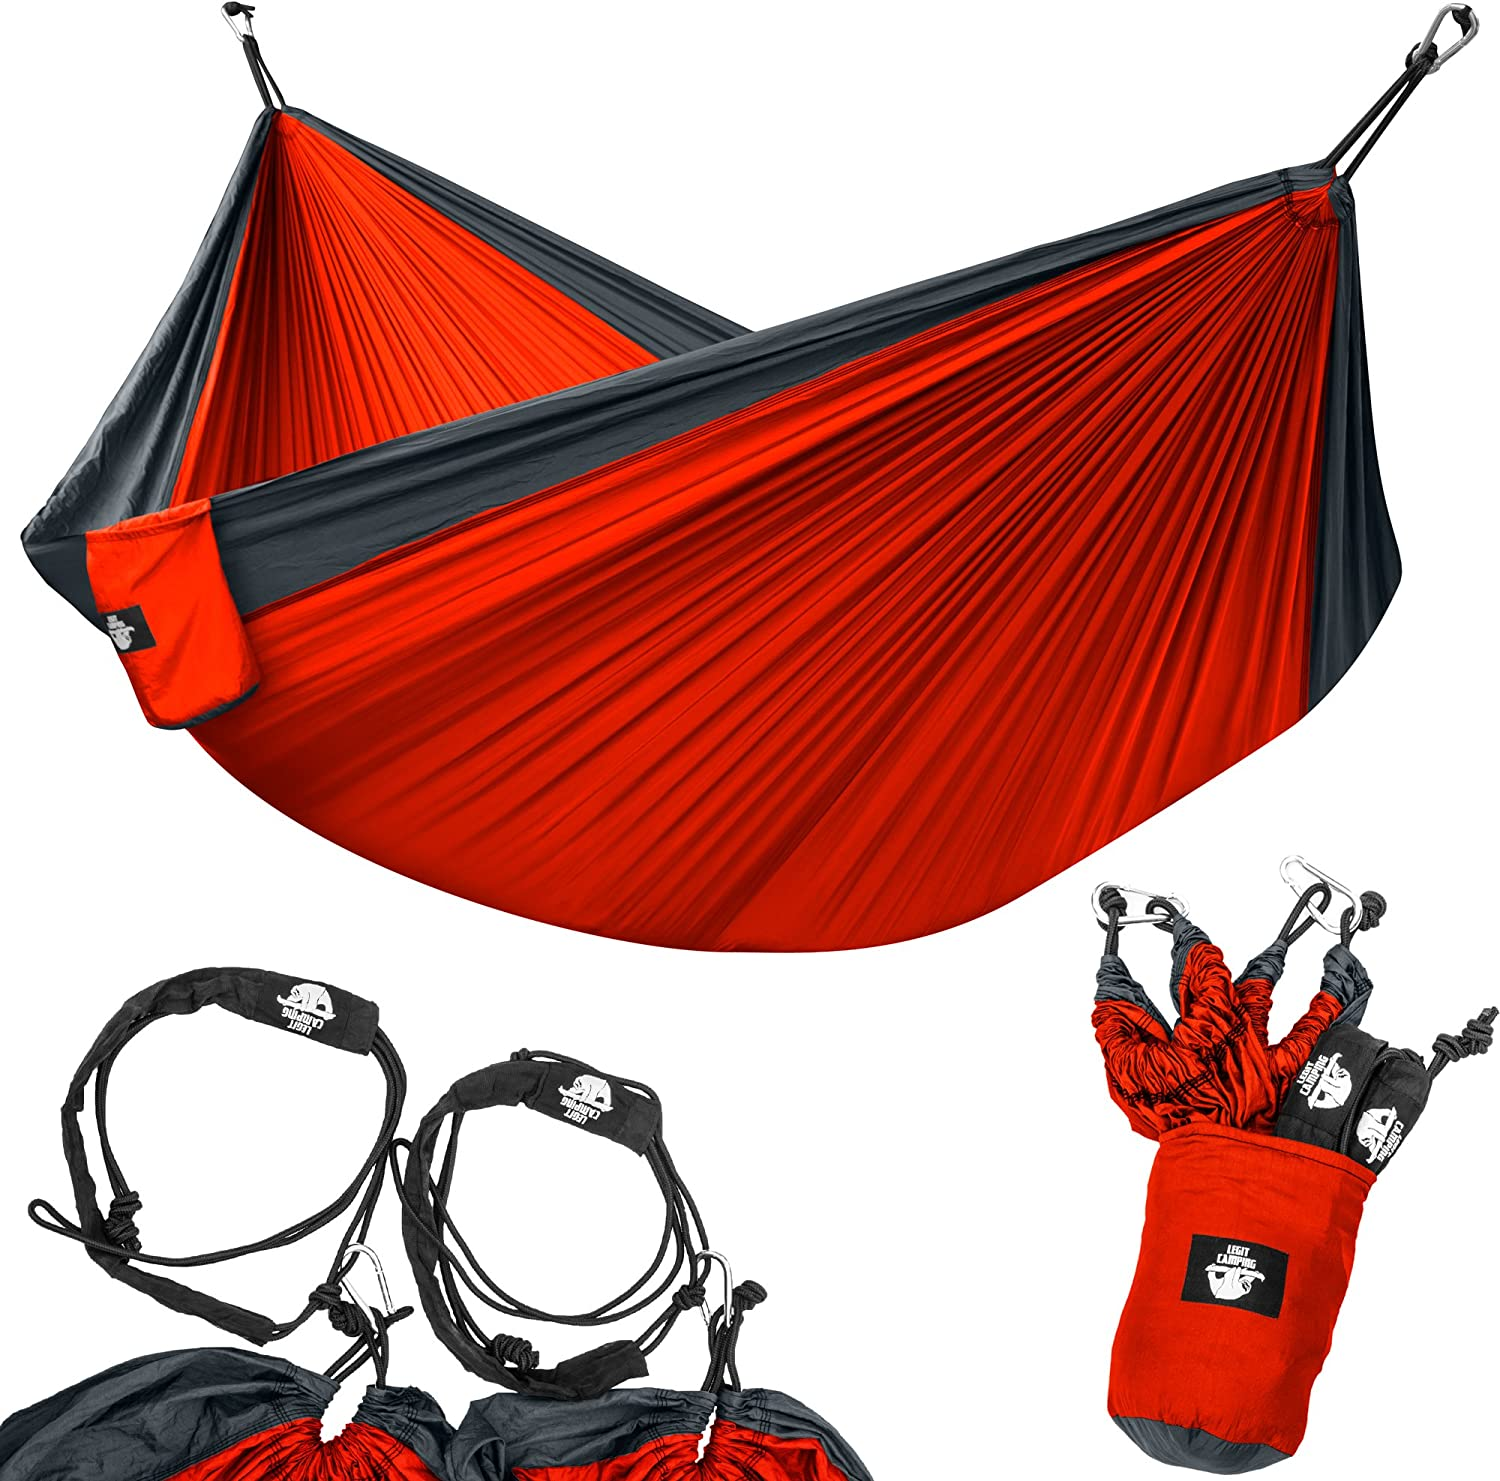 Legit Camping Portable Double Hammock - Charcoal/Red - 400 lb Weight Capacity